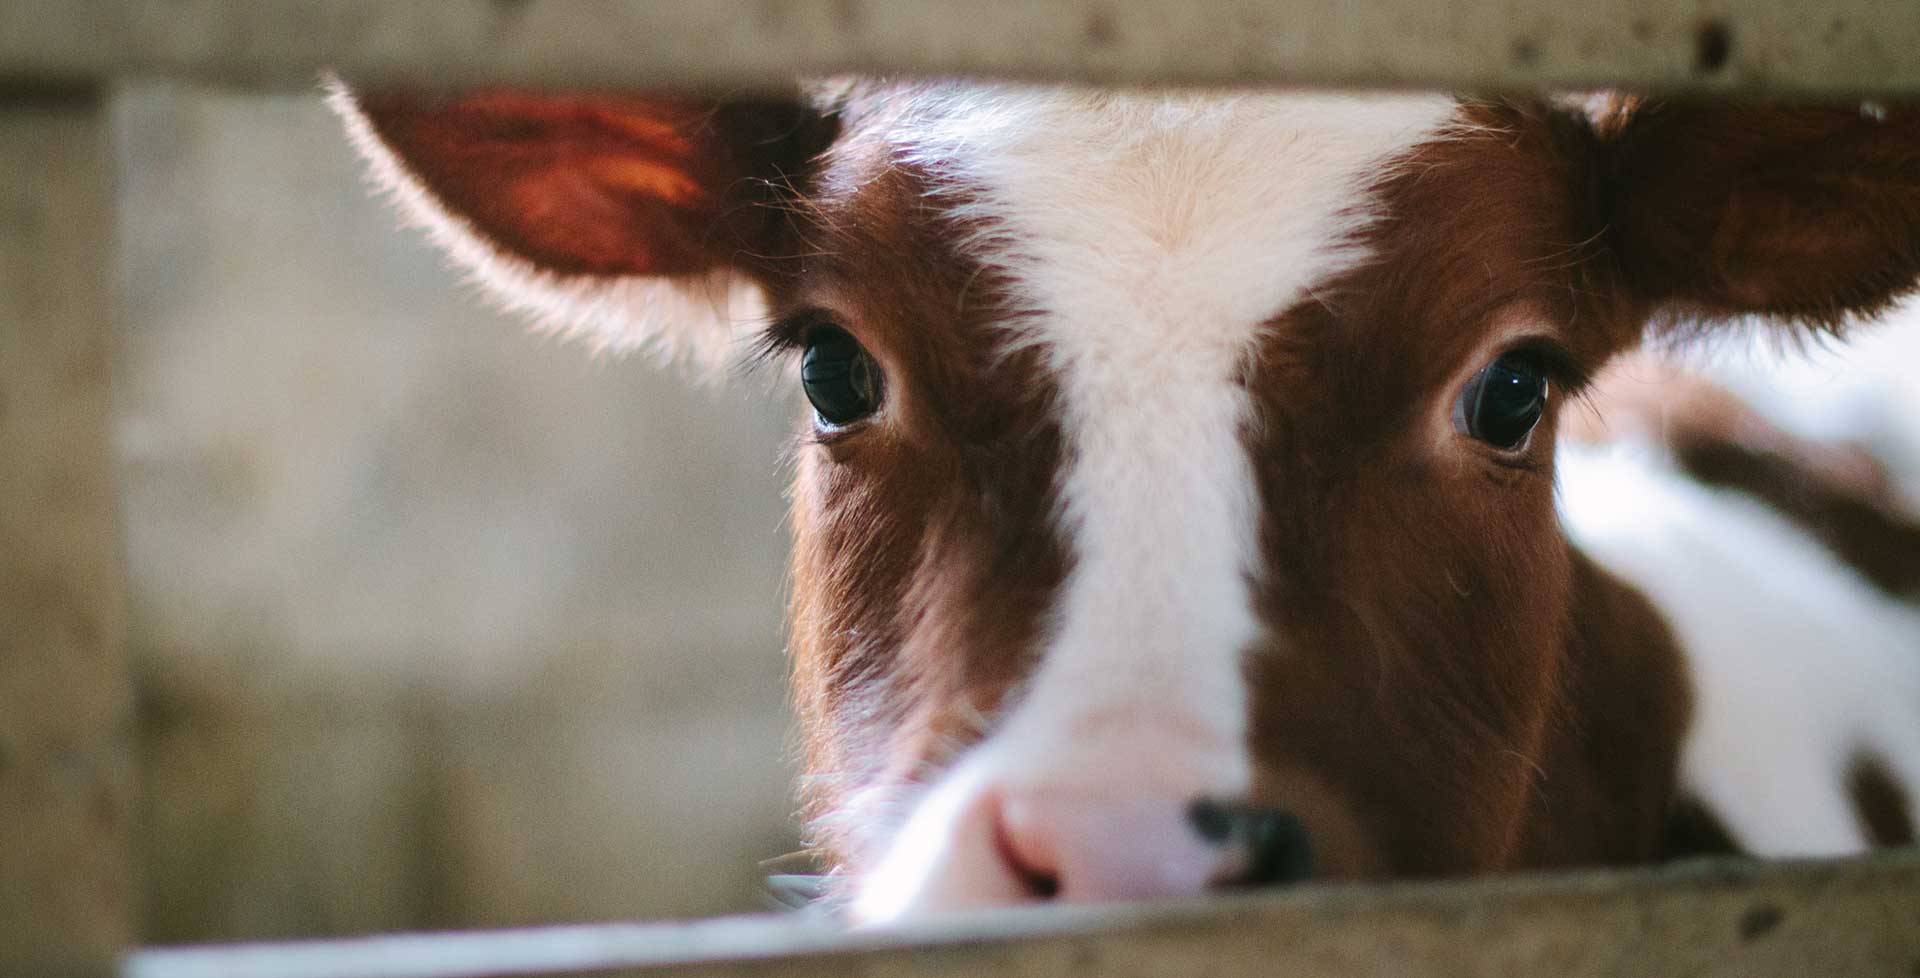 The Dairy Industry: A Mother's Worst Nightmare